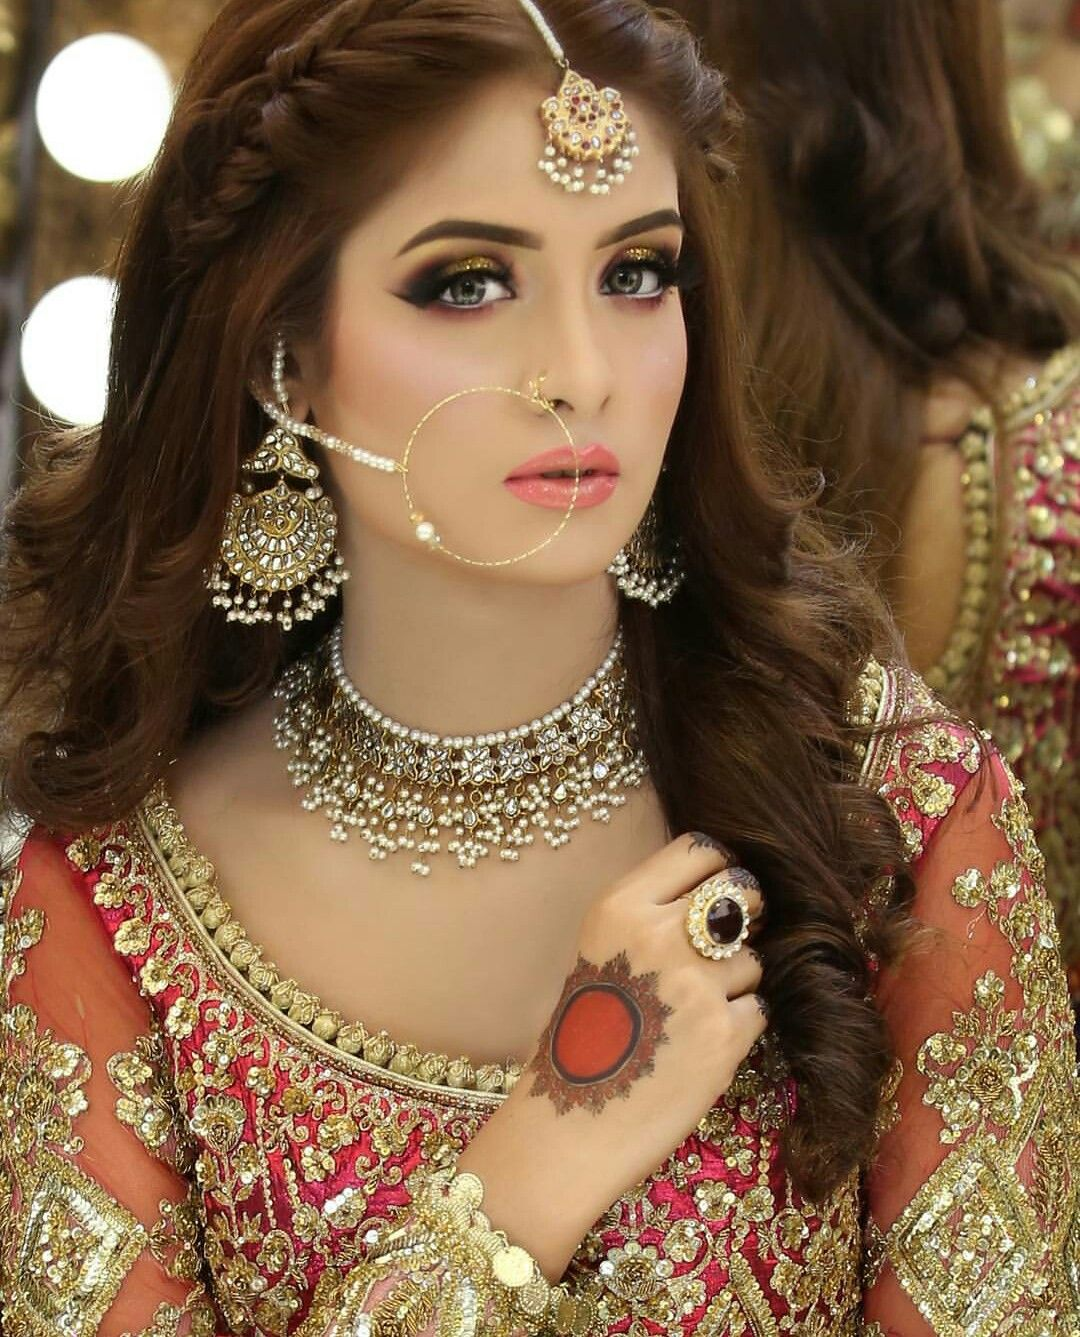 Image by Arianny Andrade on Indiano Pakistani bridal makeup